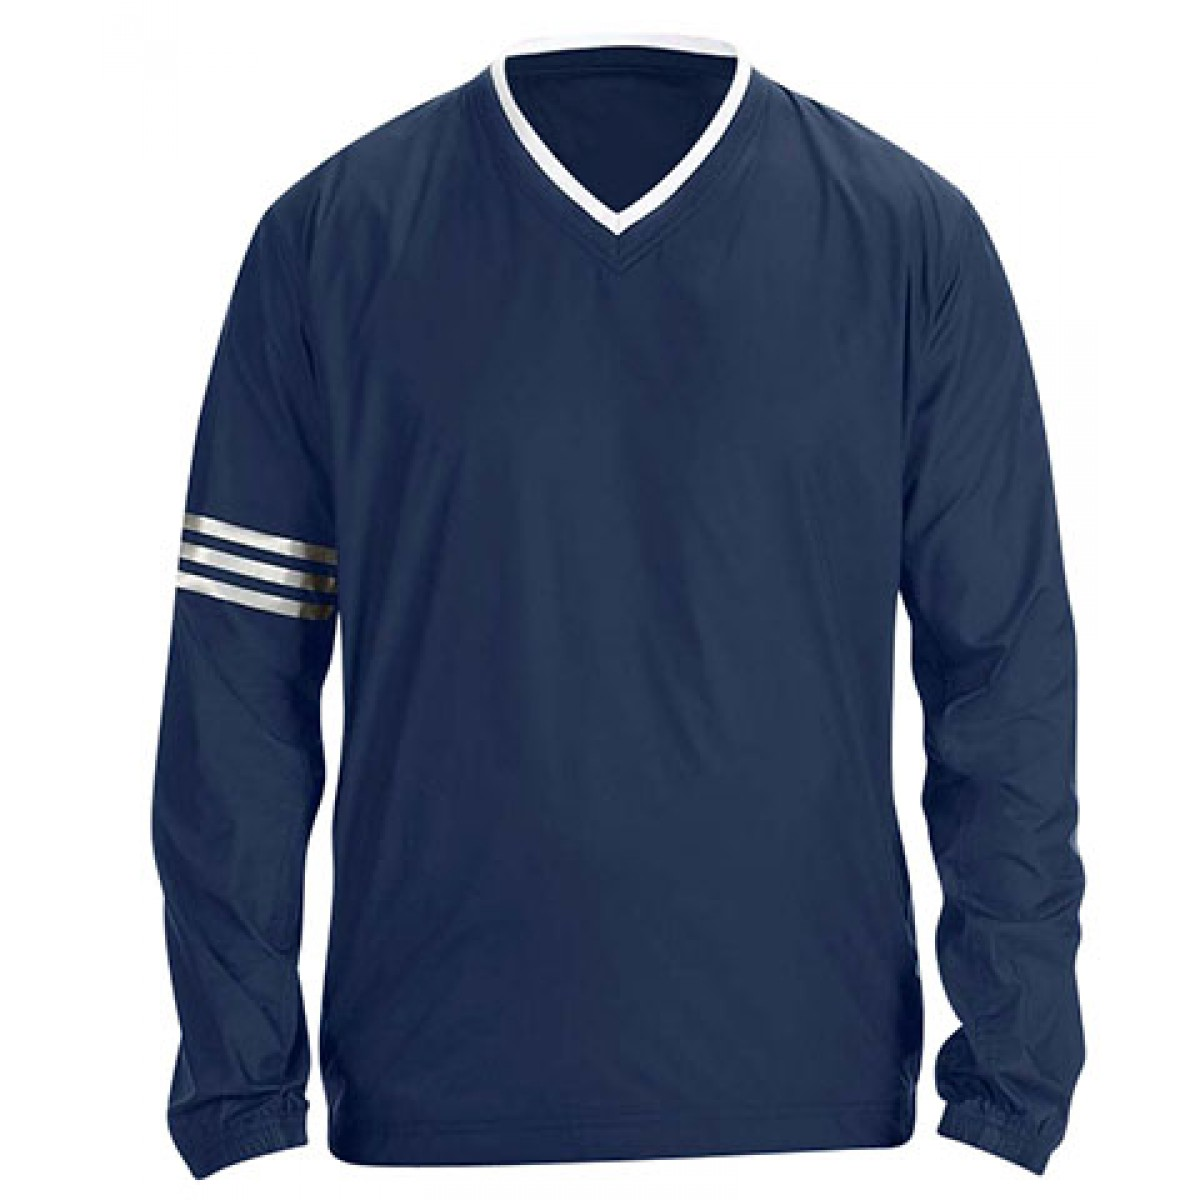 Adidas ClimaLite V-Neck Long Sleeve Wind Shirt-Navy-2XL